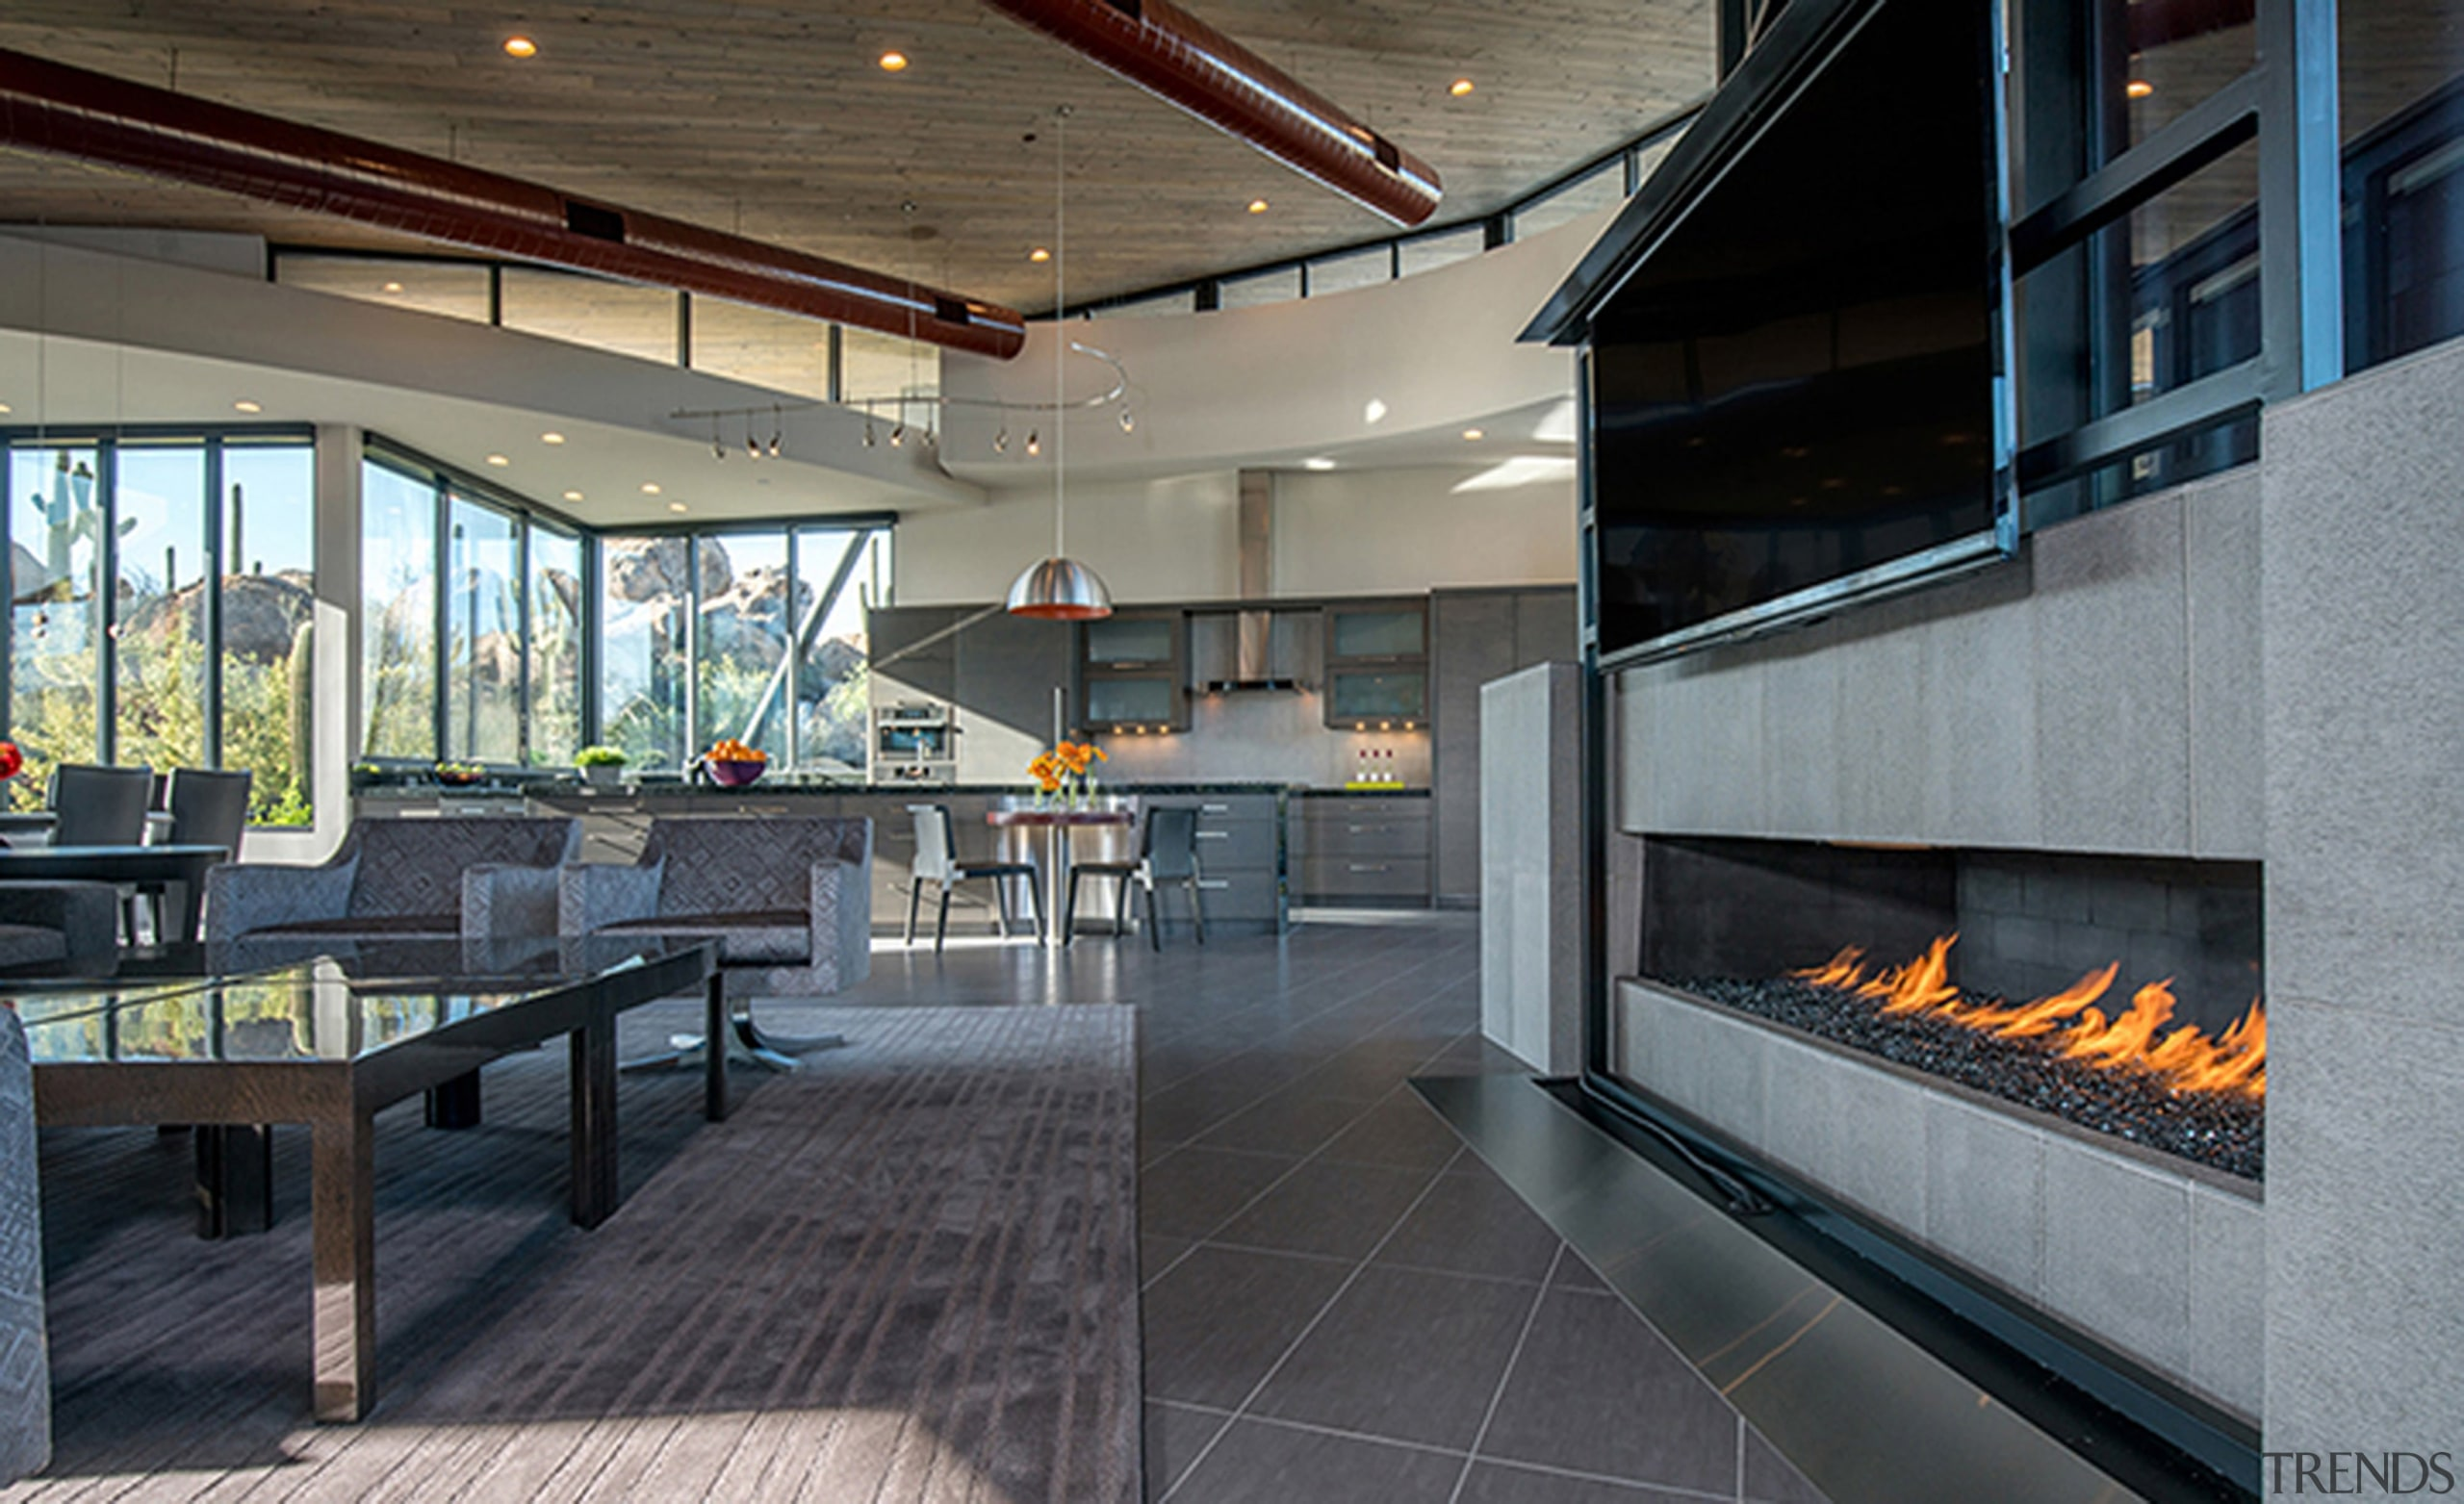 This expansive fireplace is useful at night, given architecture, house, interior design, living room, real estate, gray, black